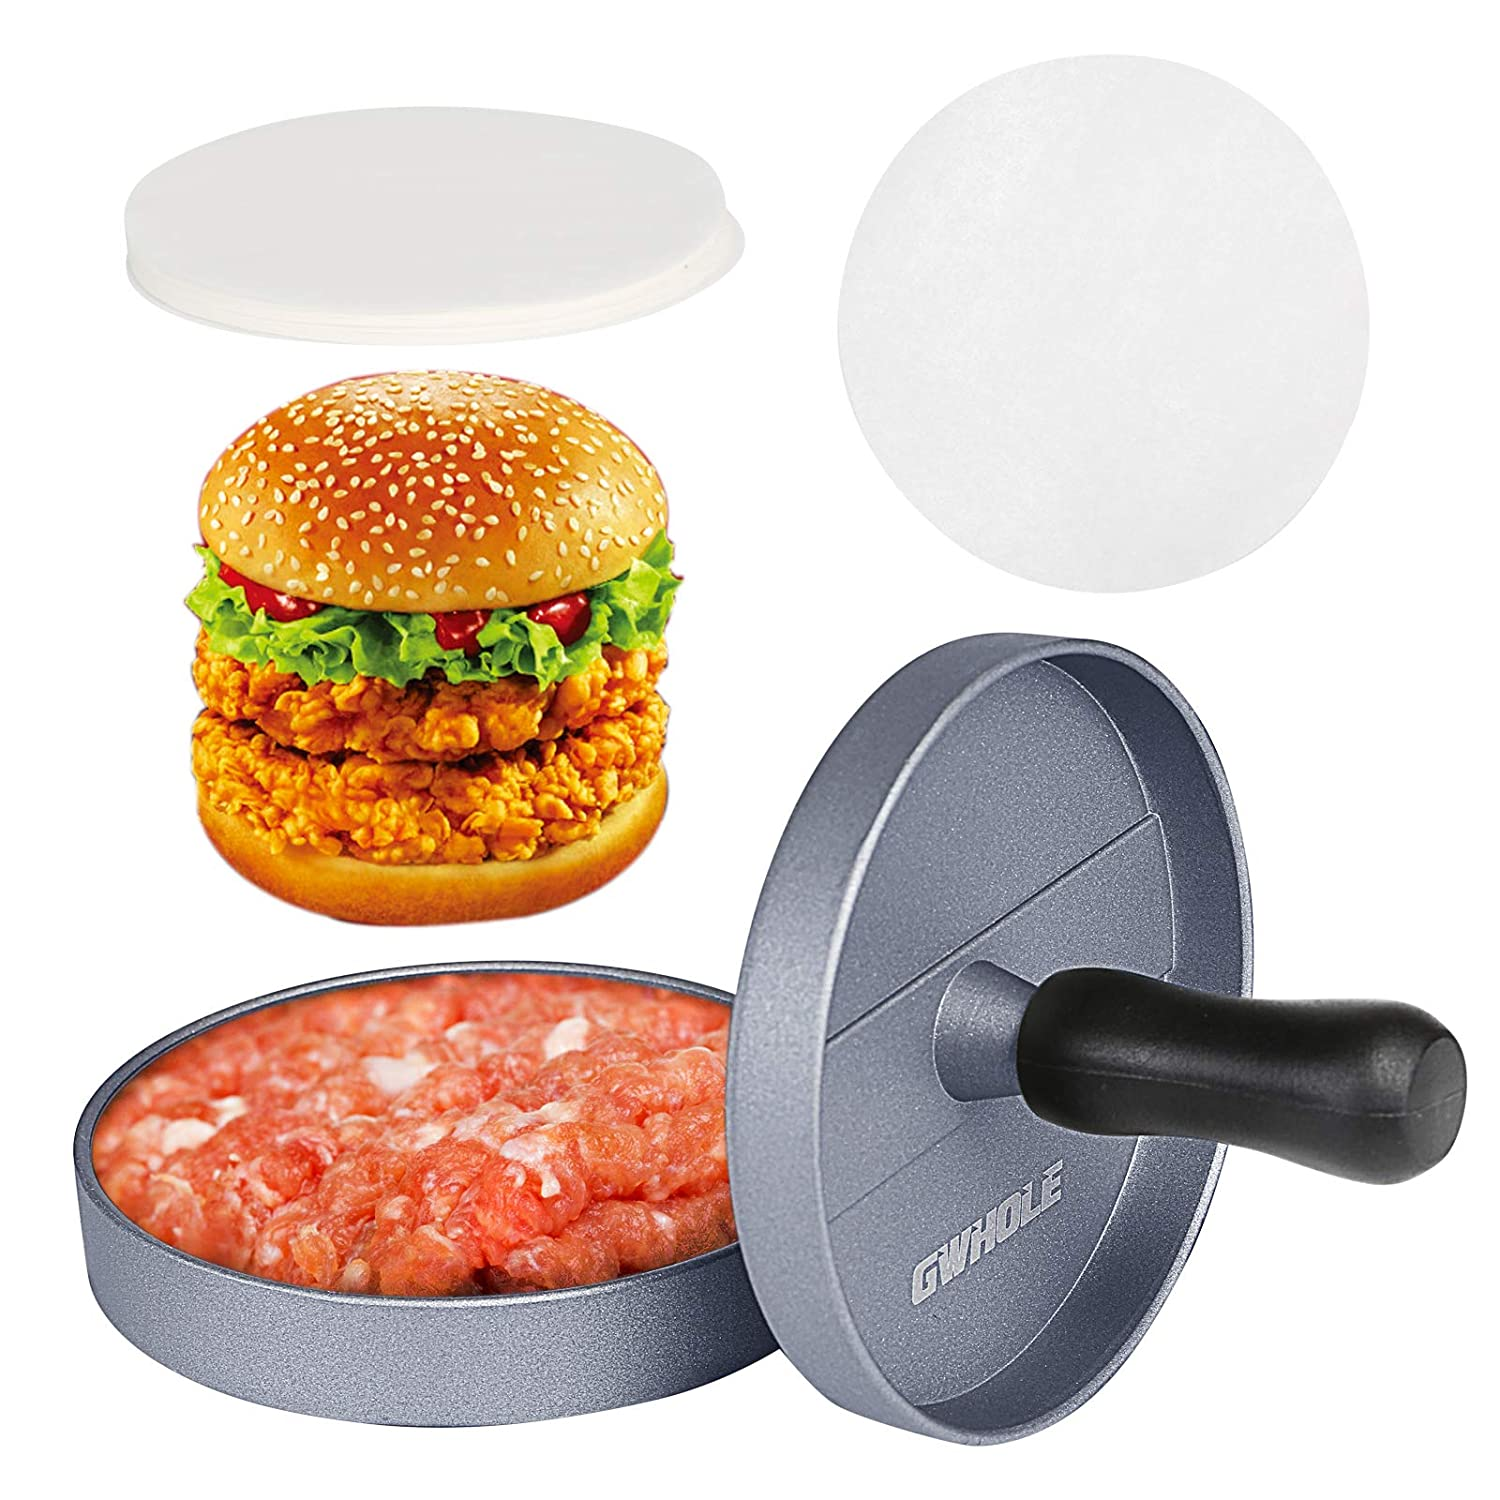 GWHOLE Non Stick Burger Press + 100 Wax Discs, Ideal for BBQ, Lifetime Warranty